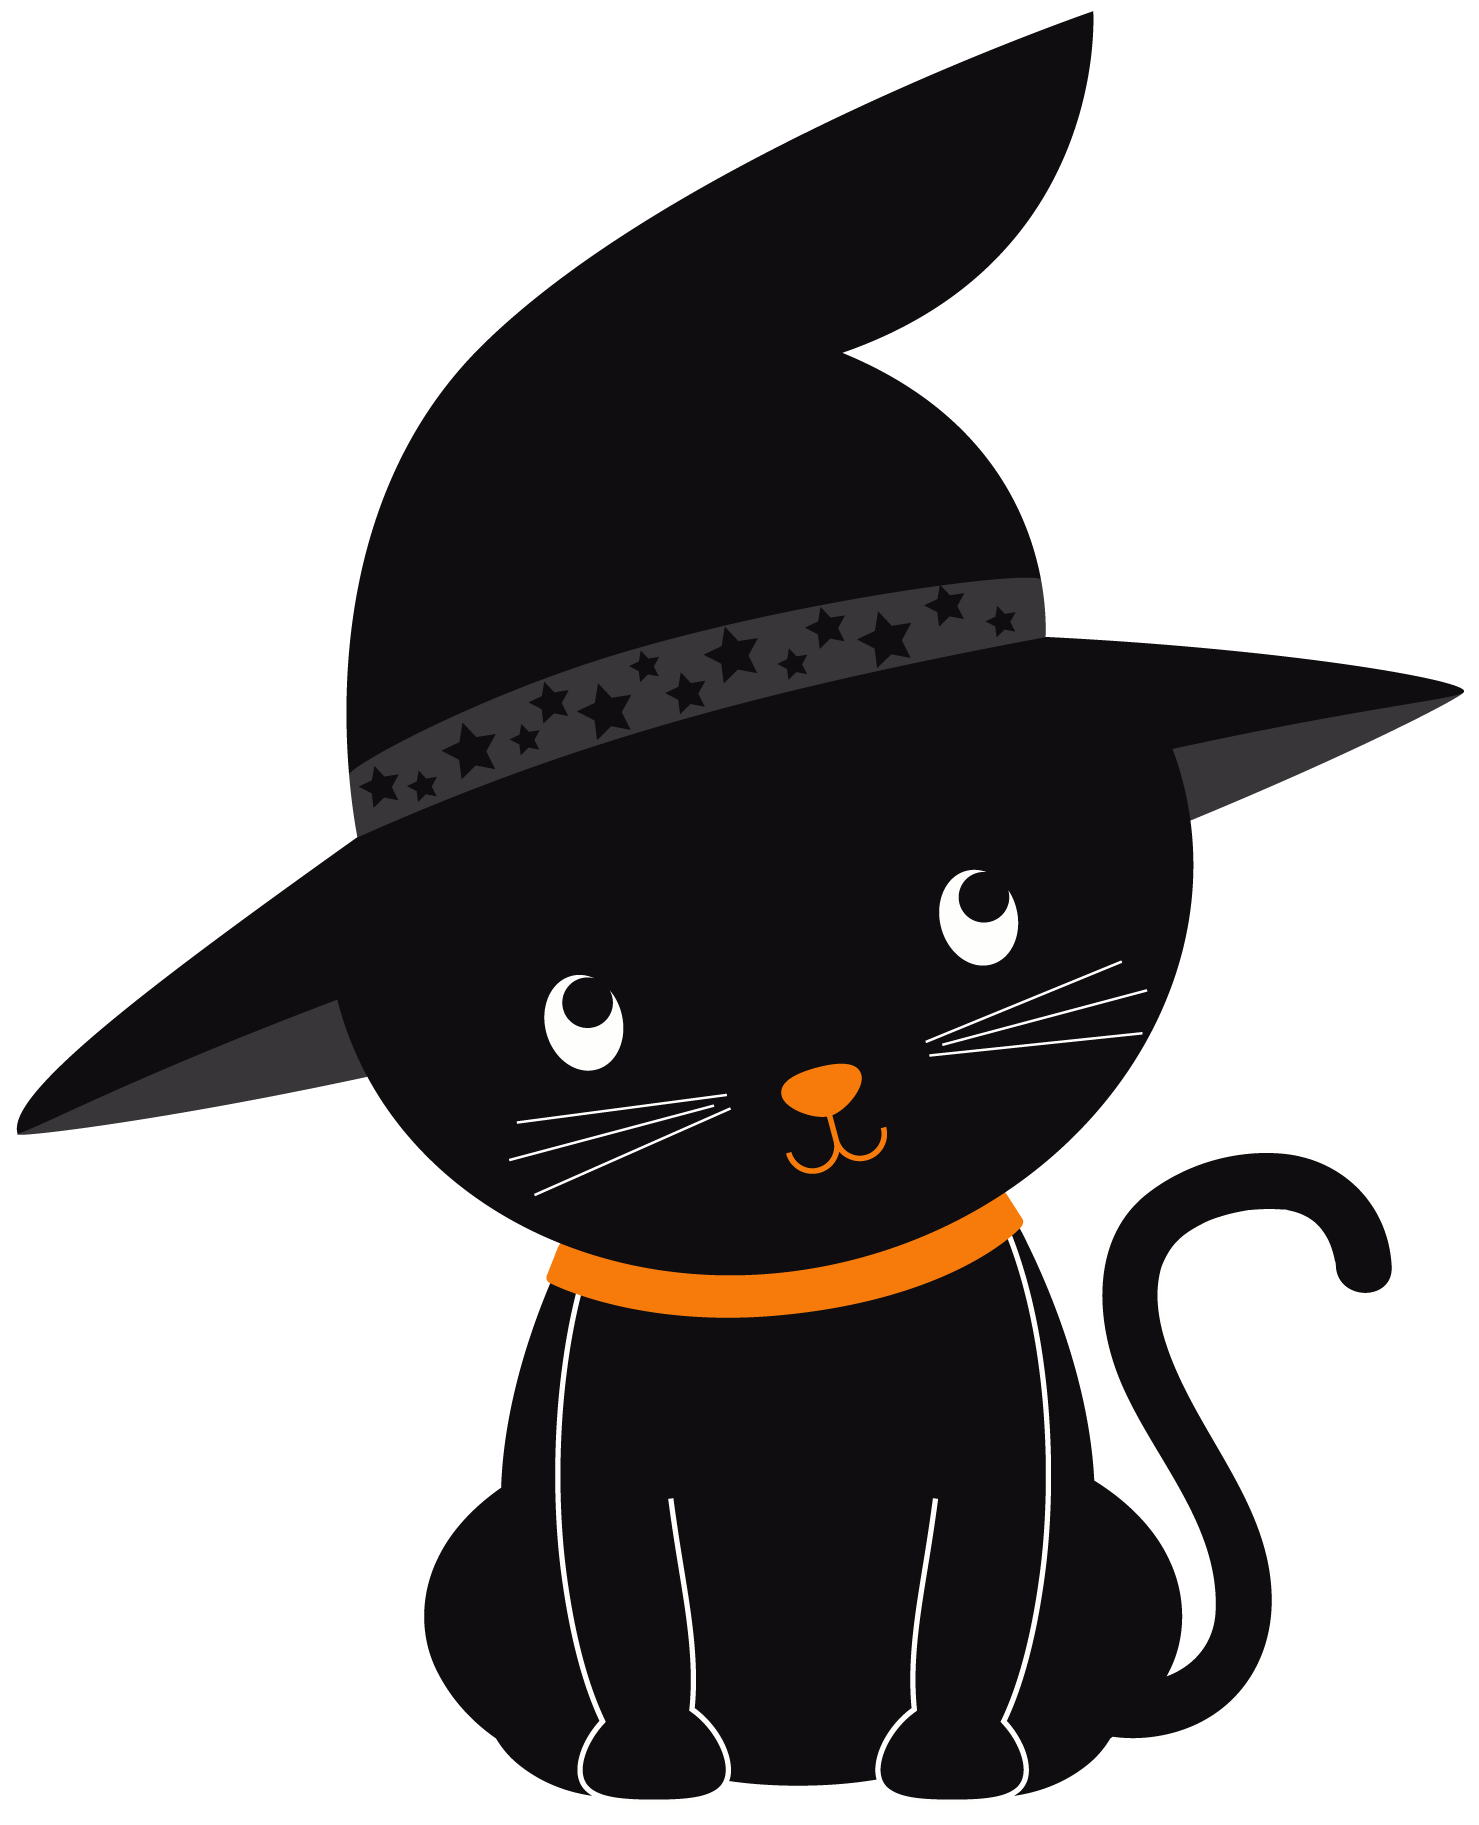 Boo clipart for halloween royalty free library Halloween - HalloweenKittenClipArtSet_ID#182-02.png - Minus | felt ... royalty free library